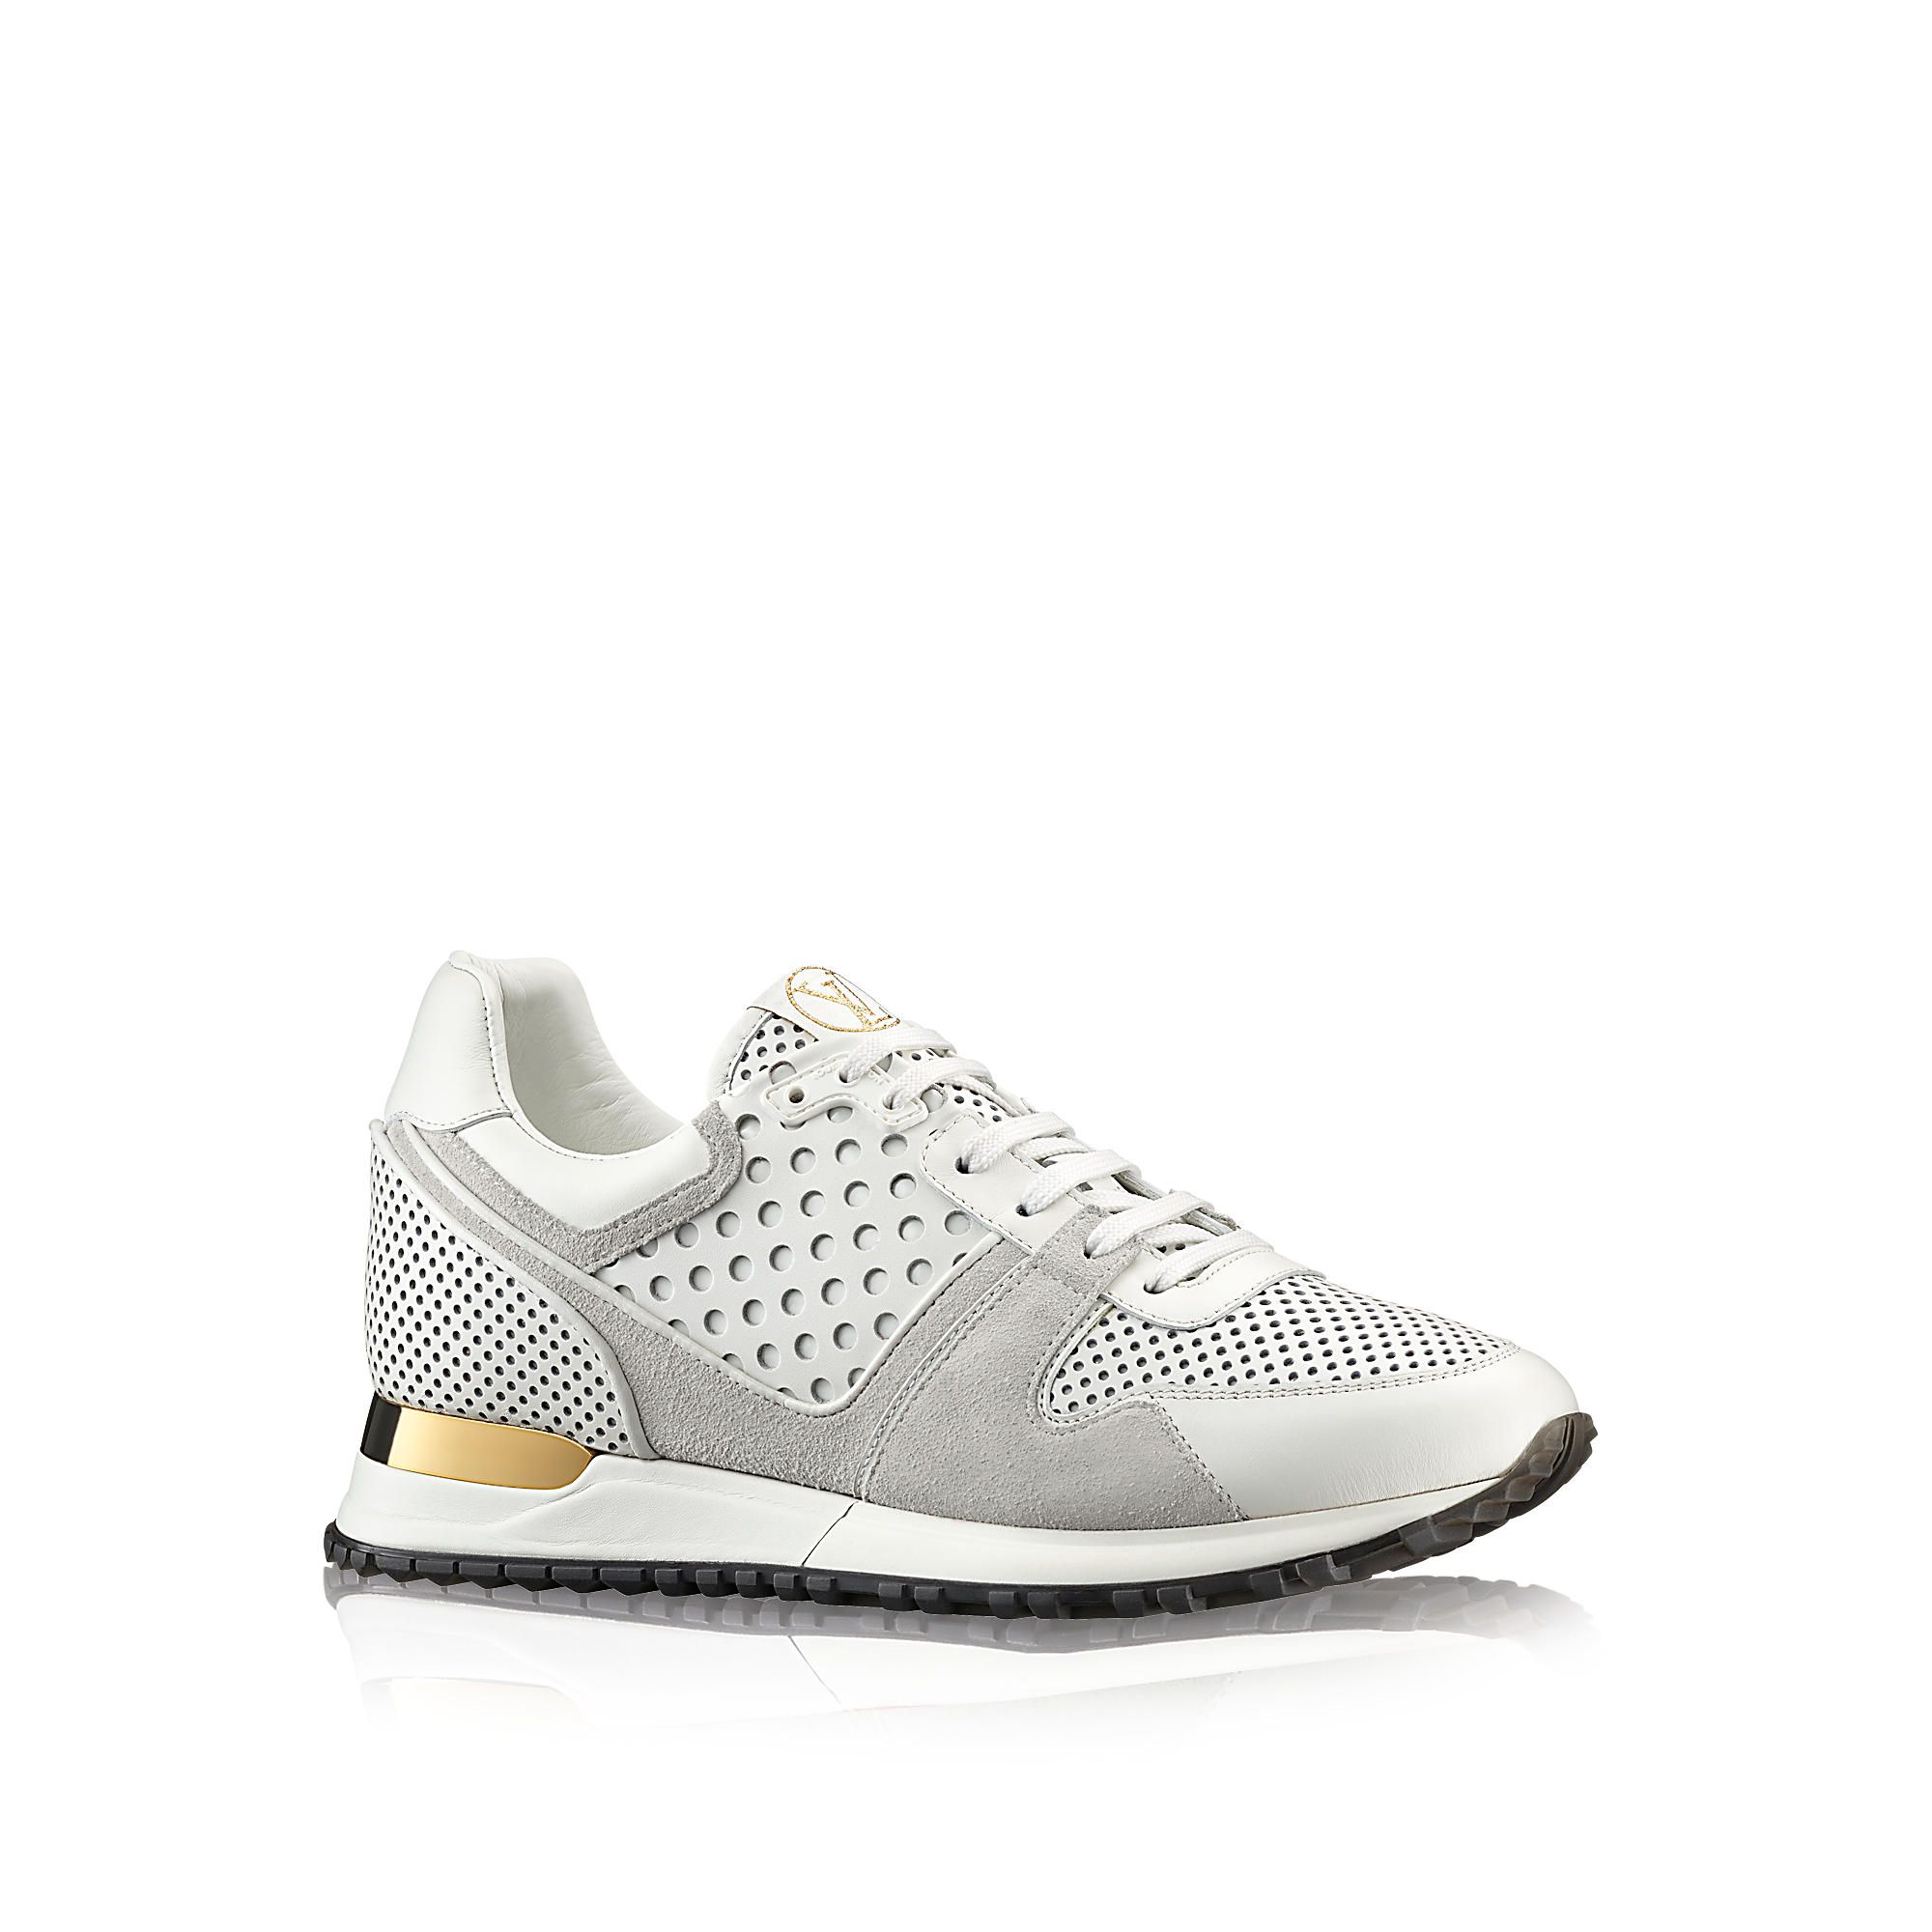 Discover Louis Vuitton Run Away Sneaker: This eye-catching sneaker combines  an authentic running shoe design with an upper in perforated calf leather.